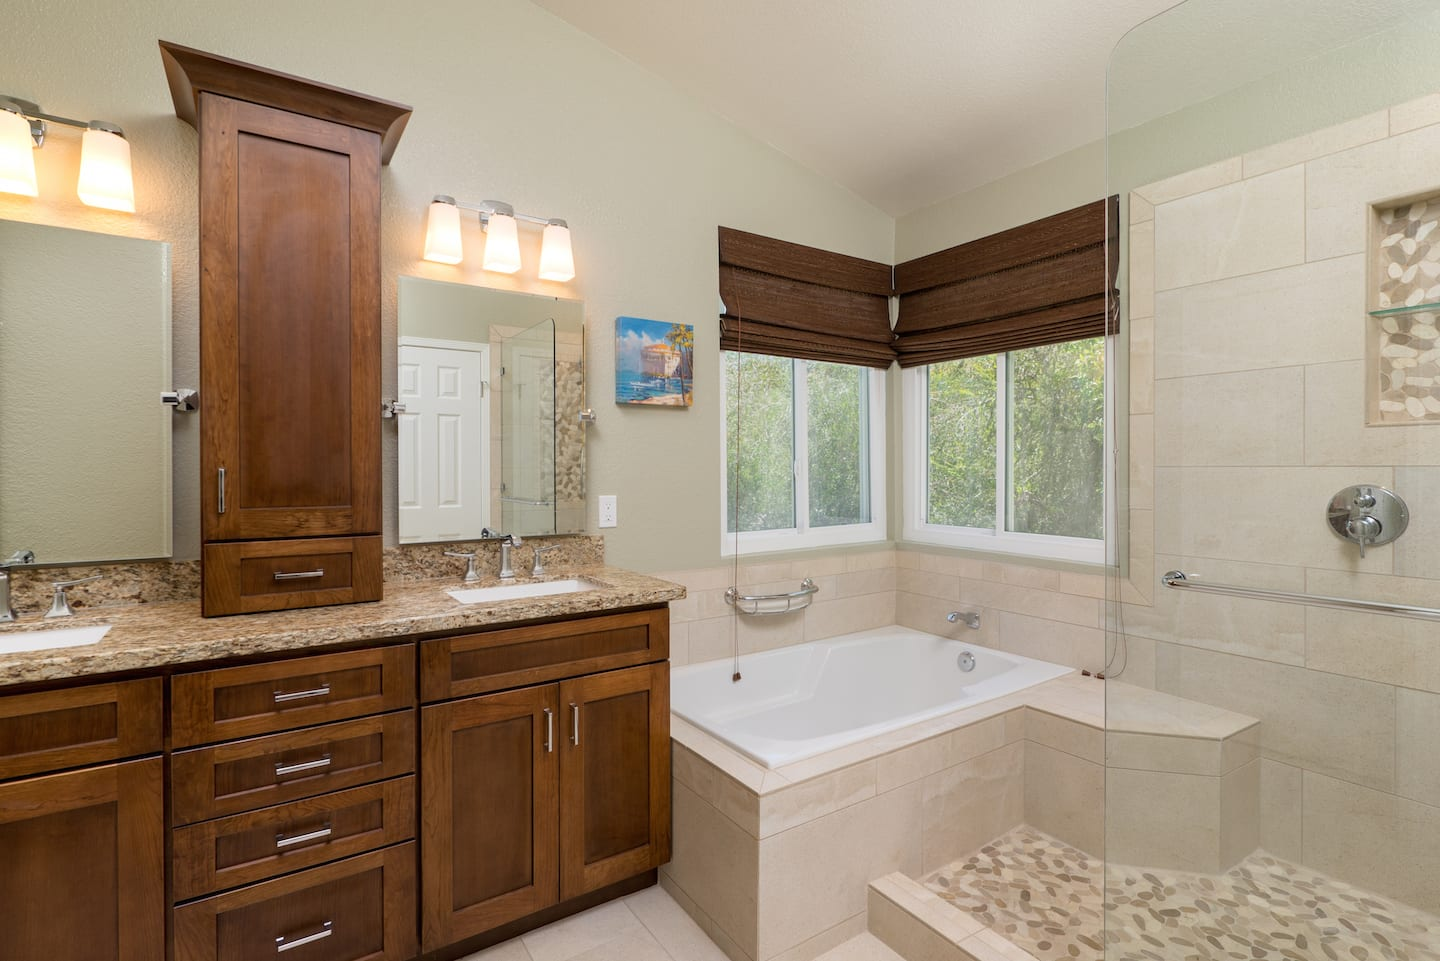 Bathroom Remodel Cost Dallas bathroom remodeling - planning and hiring | angie's list